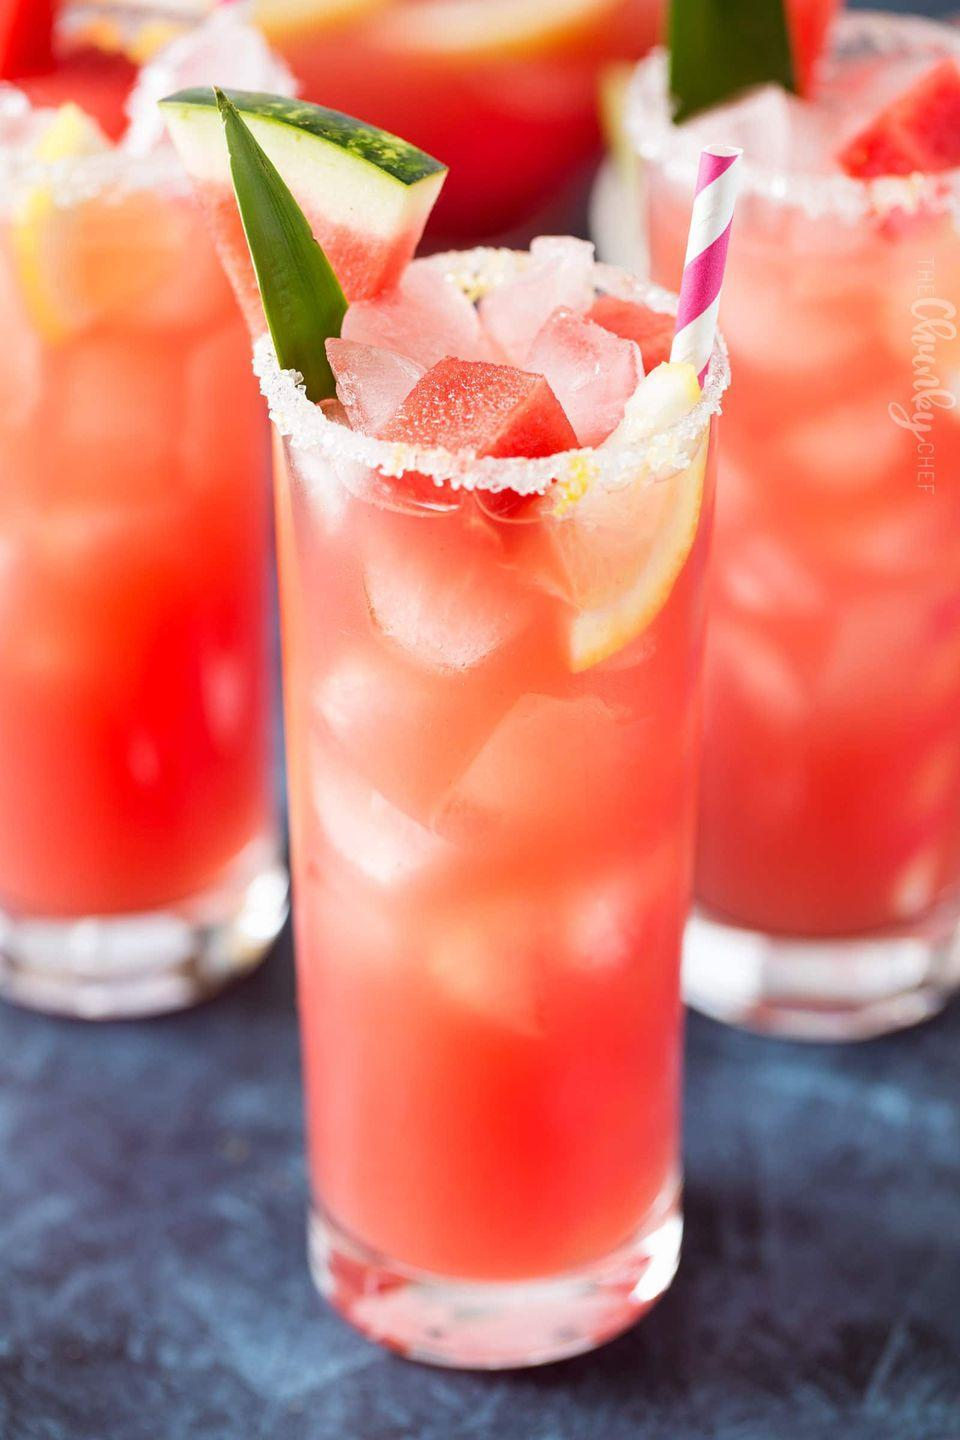 """<p>The only thing better than a tall glass of lemonade is one with watermelon juice, and a cute striped straw!</p><p><strong>Get the recipe at <a href=""""https://www.thechunkychef.com/summer-watermelon-lemonade/"""" rel=""""nofollow noopener"""" target=""""_blank"""" data-ylk=""""slk:The Chunky Chef"""" class=""""link rapid-noclick-resp"""">The Chunky Chef</a>.</strong></p><p><strong><strong><a class=""""link rapid-noclick-resp"""" href=""""https://go.redirectingat.com?id=74968X1596630&url=https%3A%2F%2Fwww.walmart.com%2Fip%2FThe-Pioneer-Woman-3-2-Quart-Willow-Pitcher%2F456874744&sref=https%3A%2F%2Fwww.thepioneerwoman.com%2Ffood-cooking%2Fmeals-menus%2Fg32147587%2Fwatermelon-drink-recipes%2F"""" rel=""""nofollow noopener"""" target=""""_blank"""" data-ylk=""""slk:SHOP PITCHERS"""">SHOP PITCHERS</a></strong><br></strong></p>"""